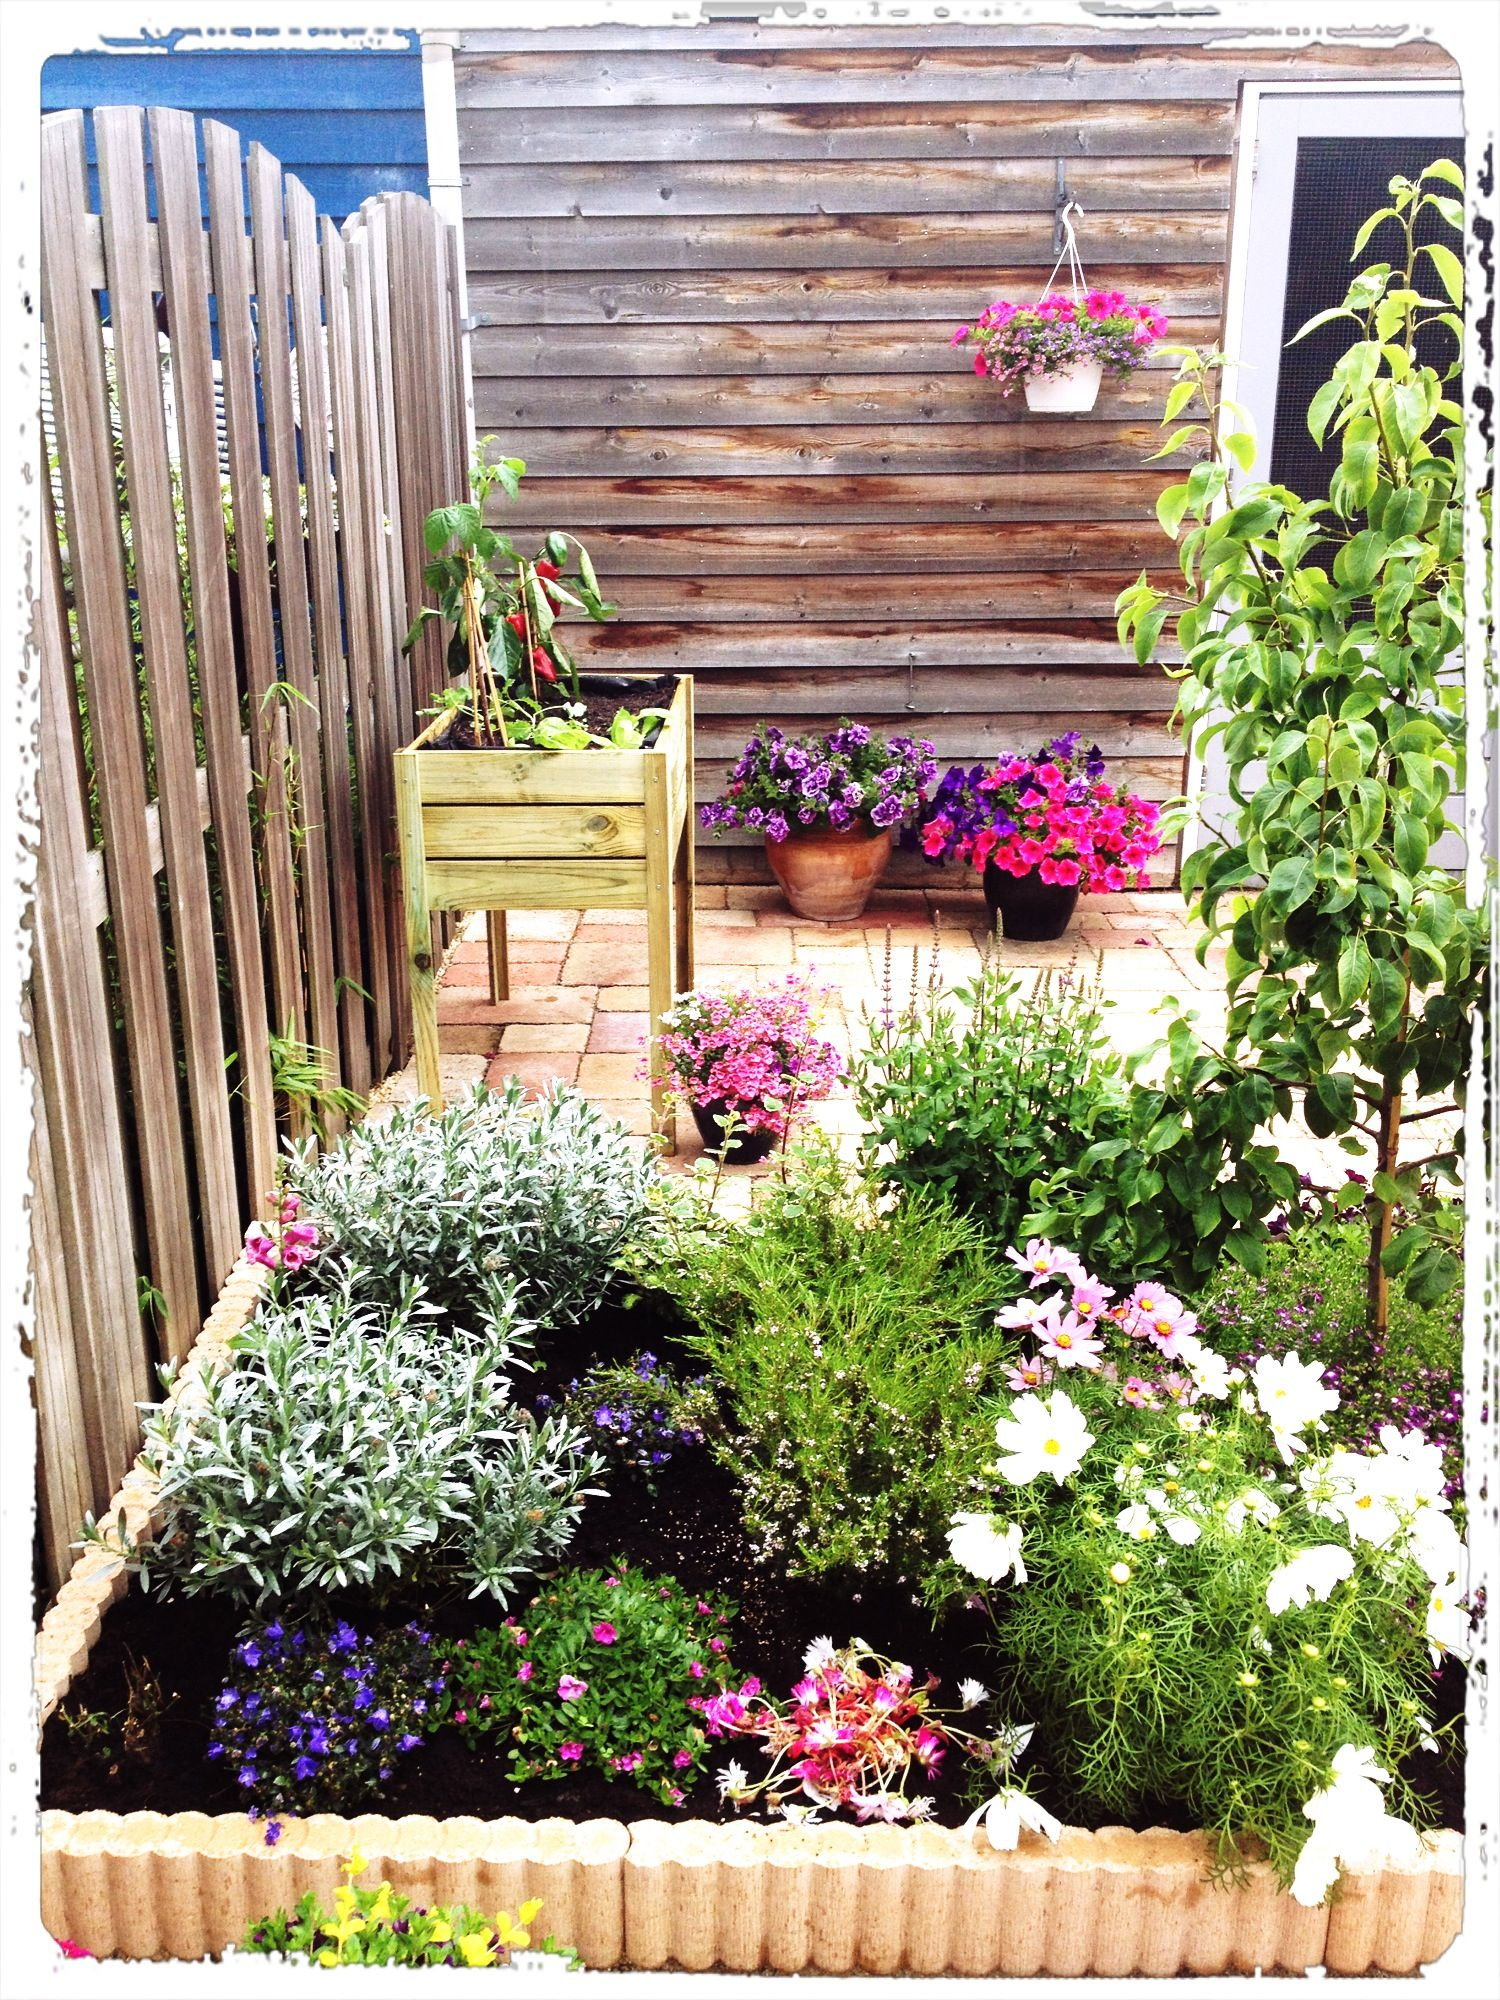 Small vegetable garden green fingers pinterest for Small vegetable garden